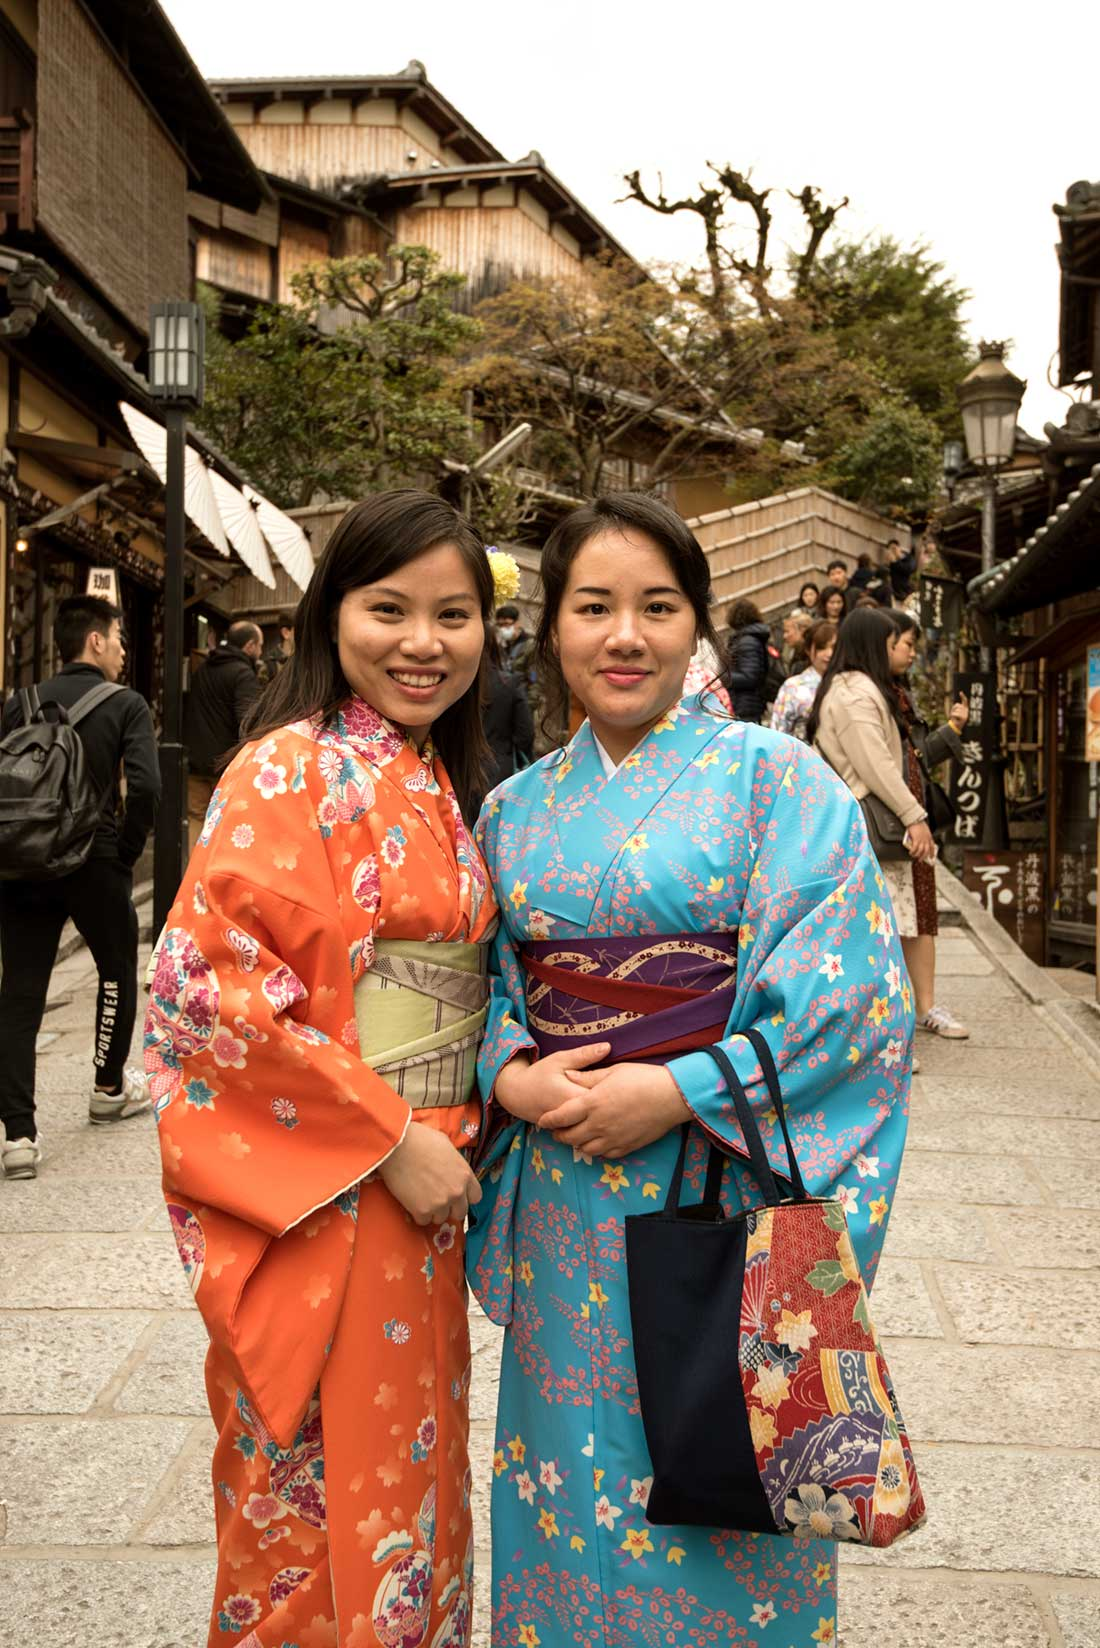 Chinese tourists in kimonos